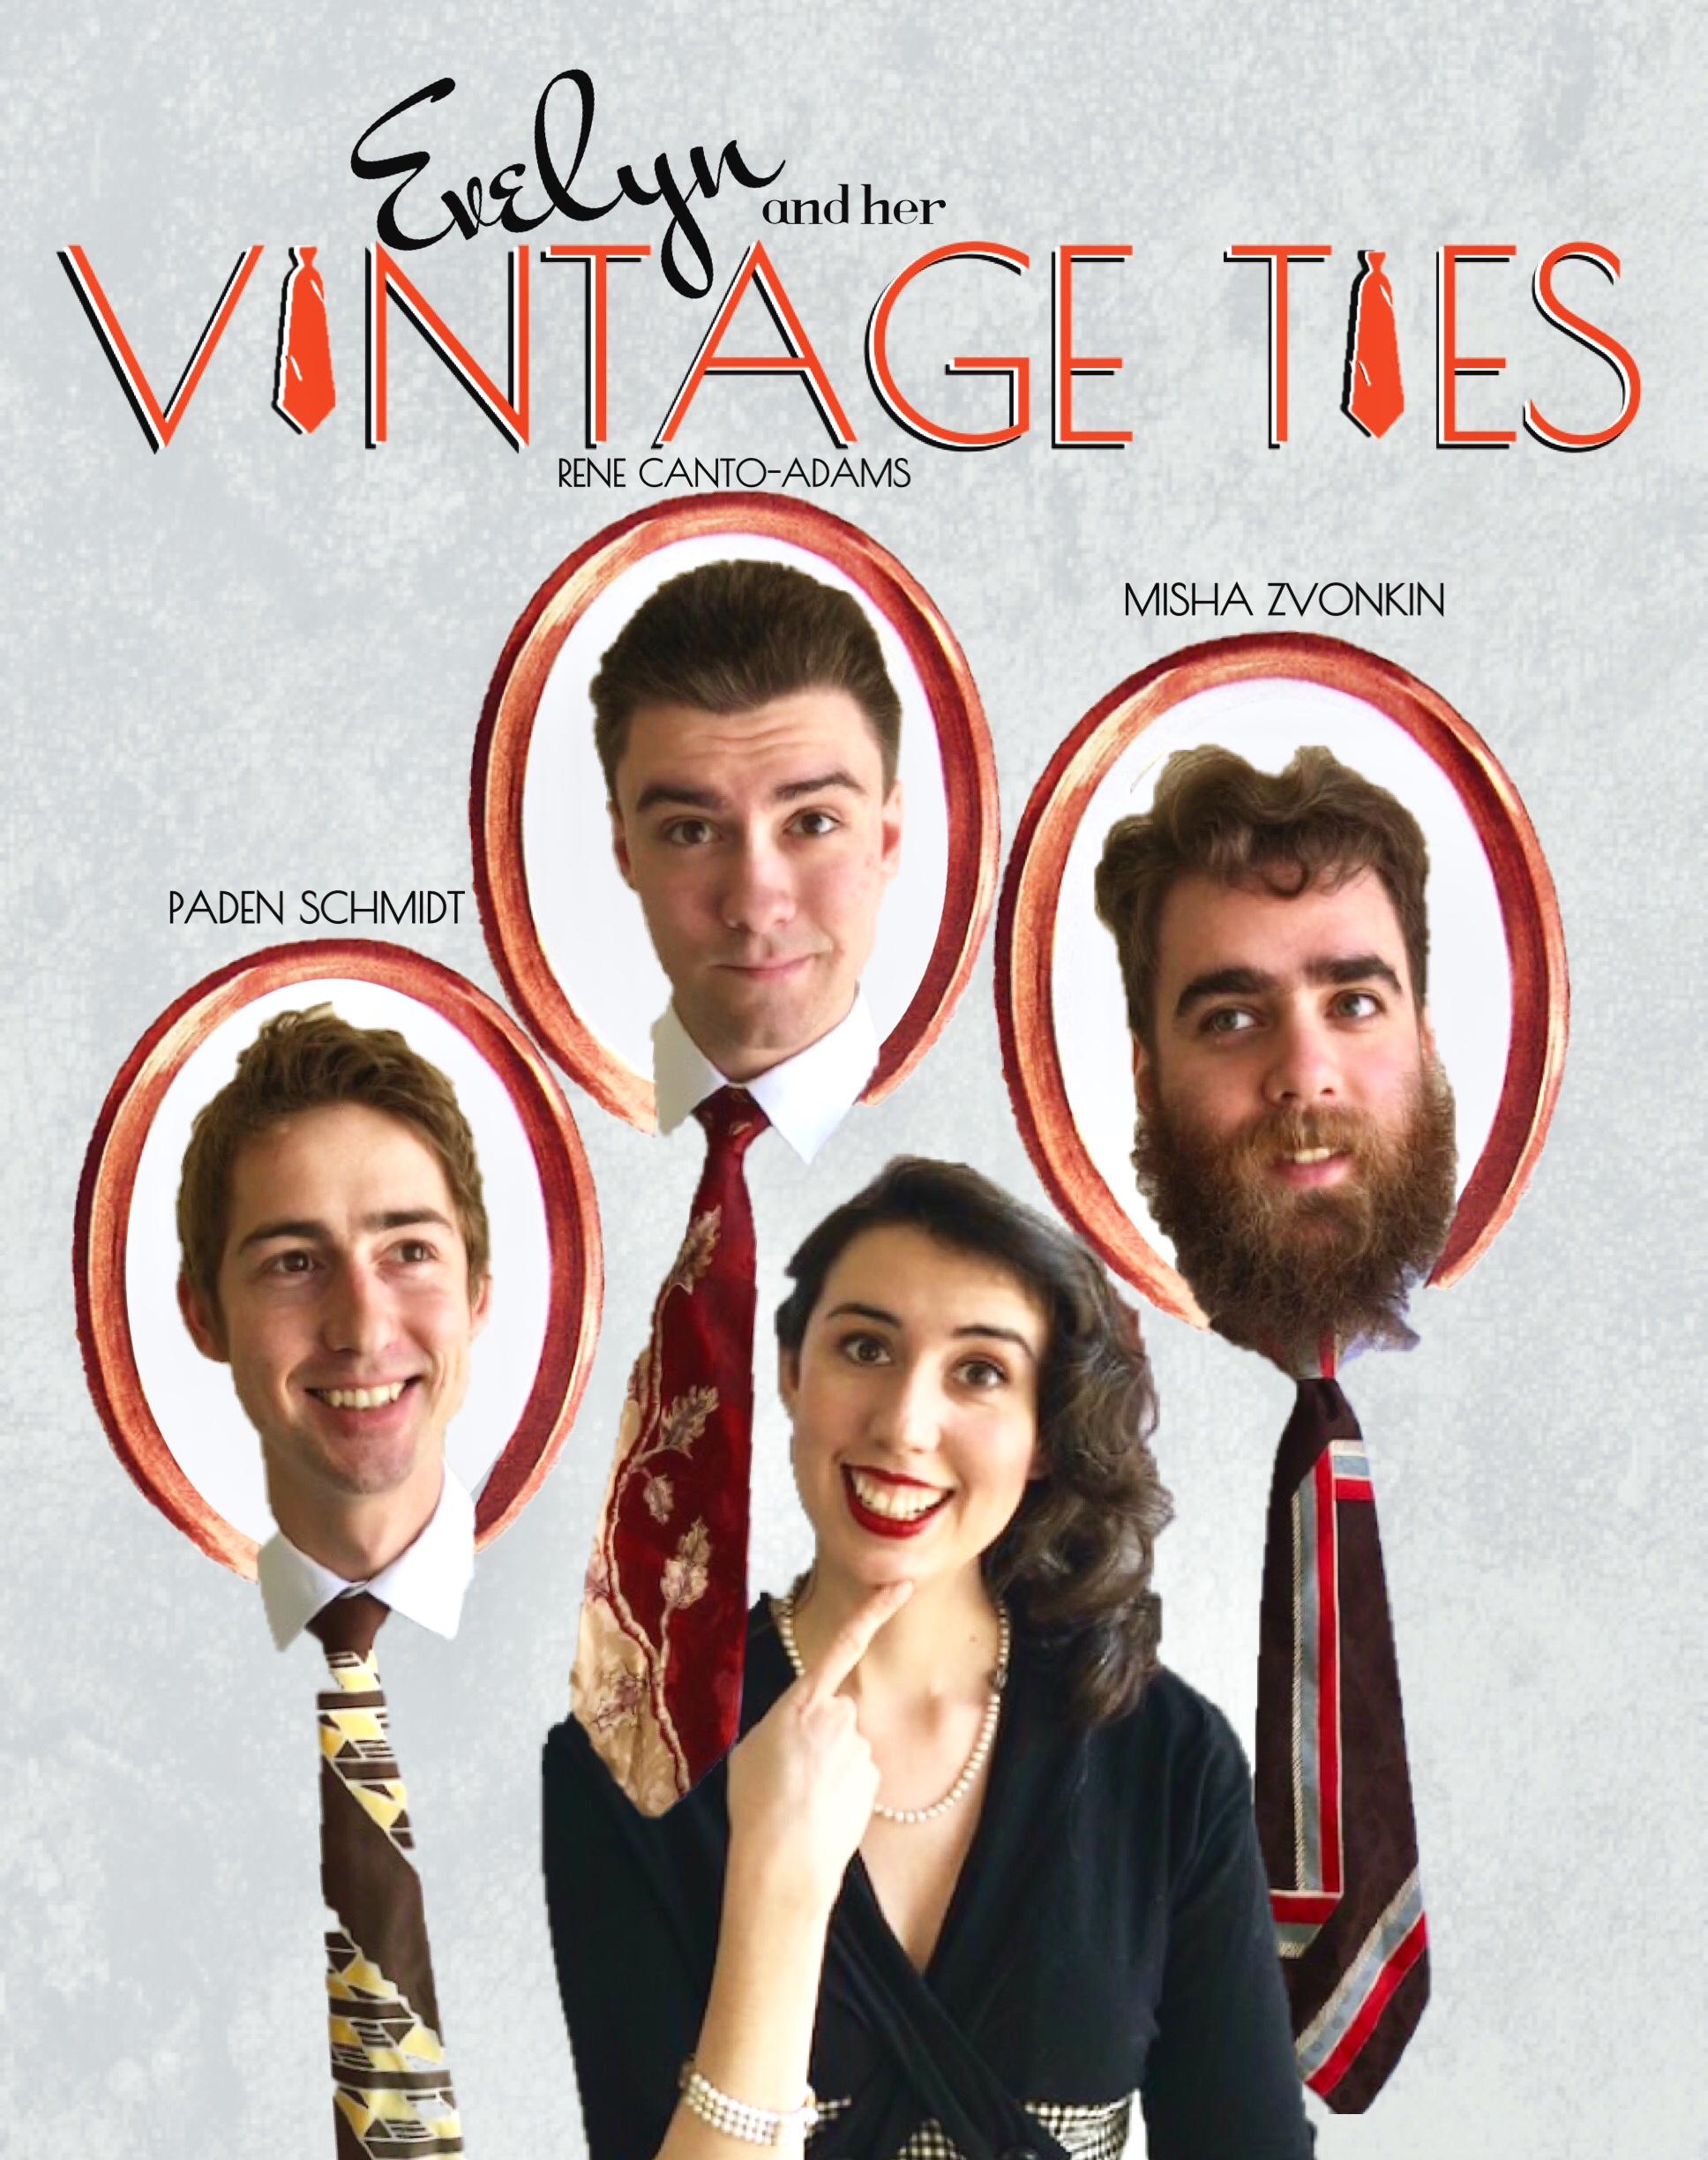 Evelyn and her Vintage Ties is a retro jazz band based in Silicon Valley. Drawing inspiration from 1930's musicians such as Billie Holiday, Benny Goodman, and Django Reinhardt, the group has a playful, classic sound. Their repertoire is a mix of everything from swing standards to New Orleans blues.